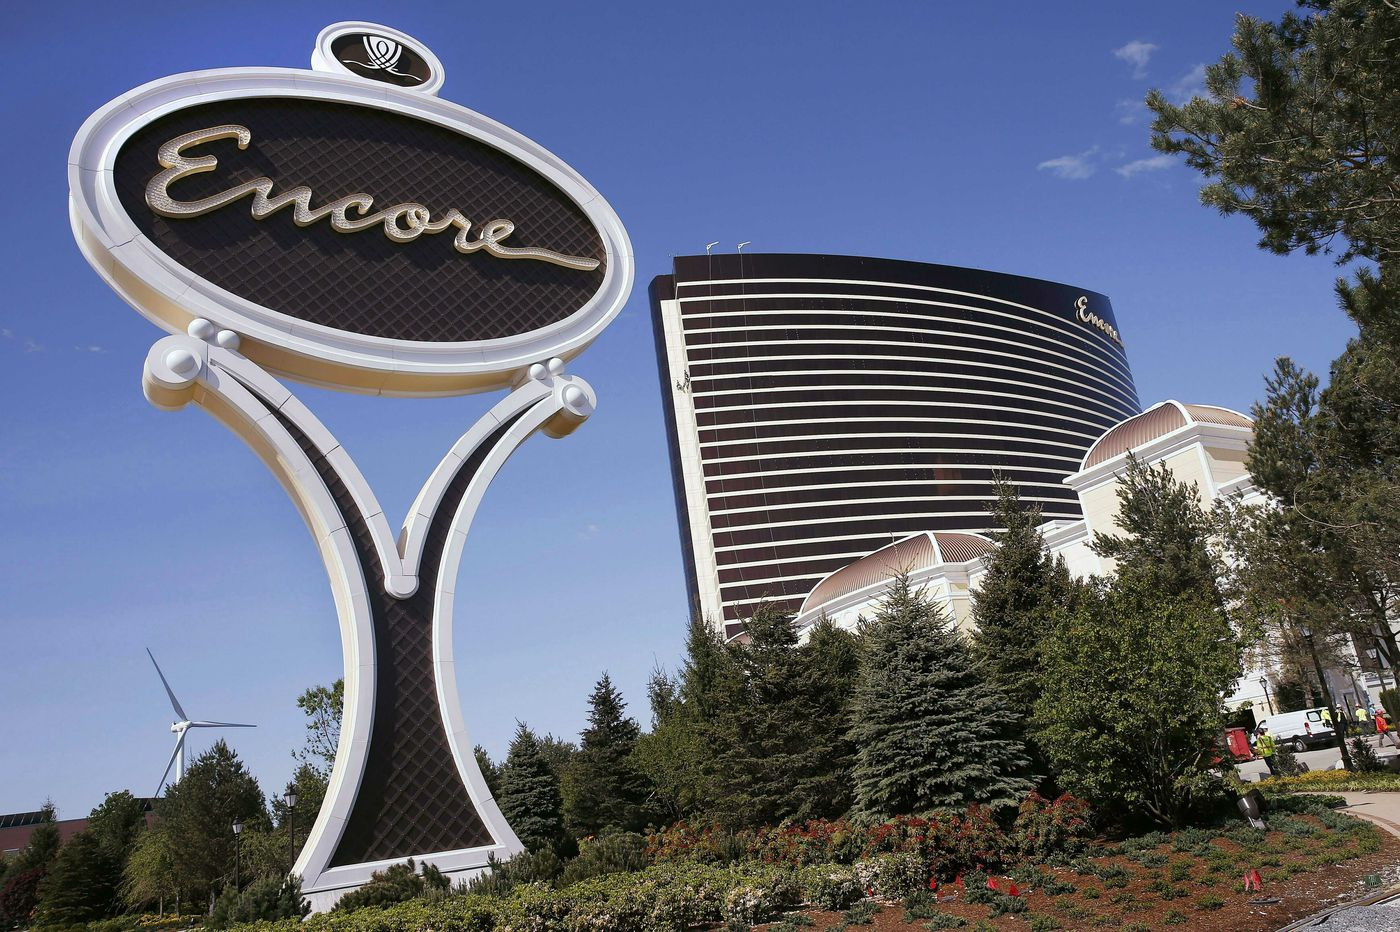 Glitzy casino opens on industrial waterfront. Will it work?